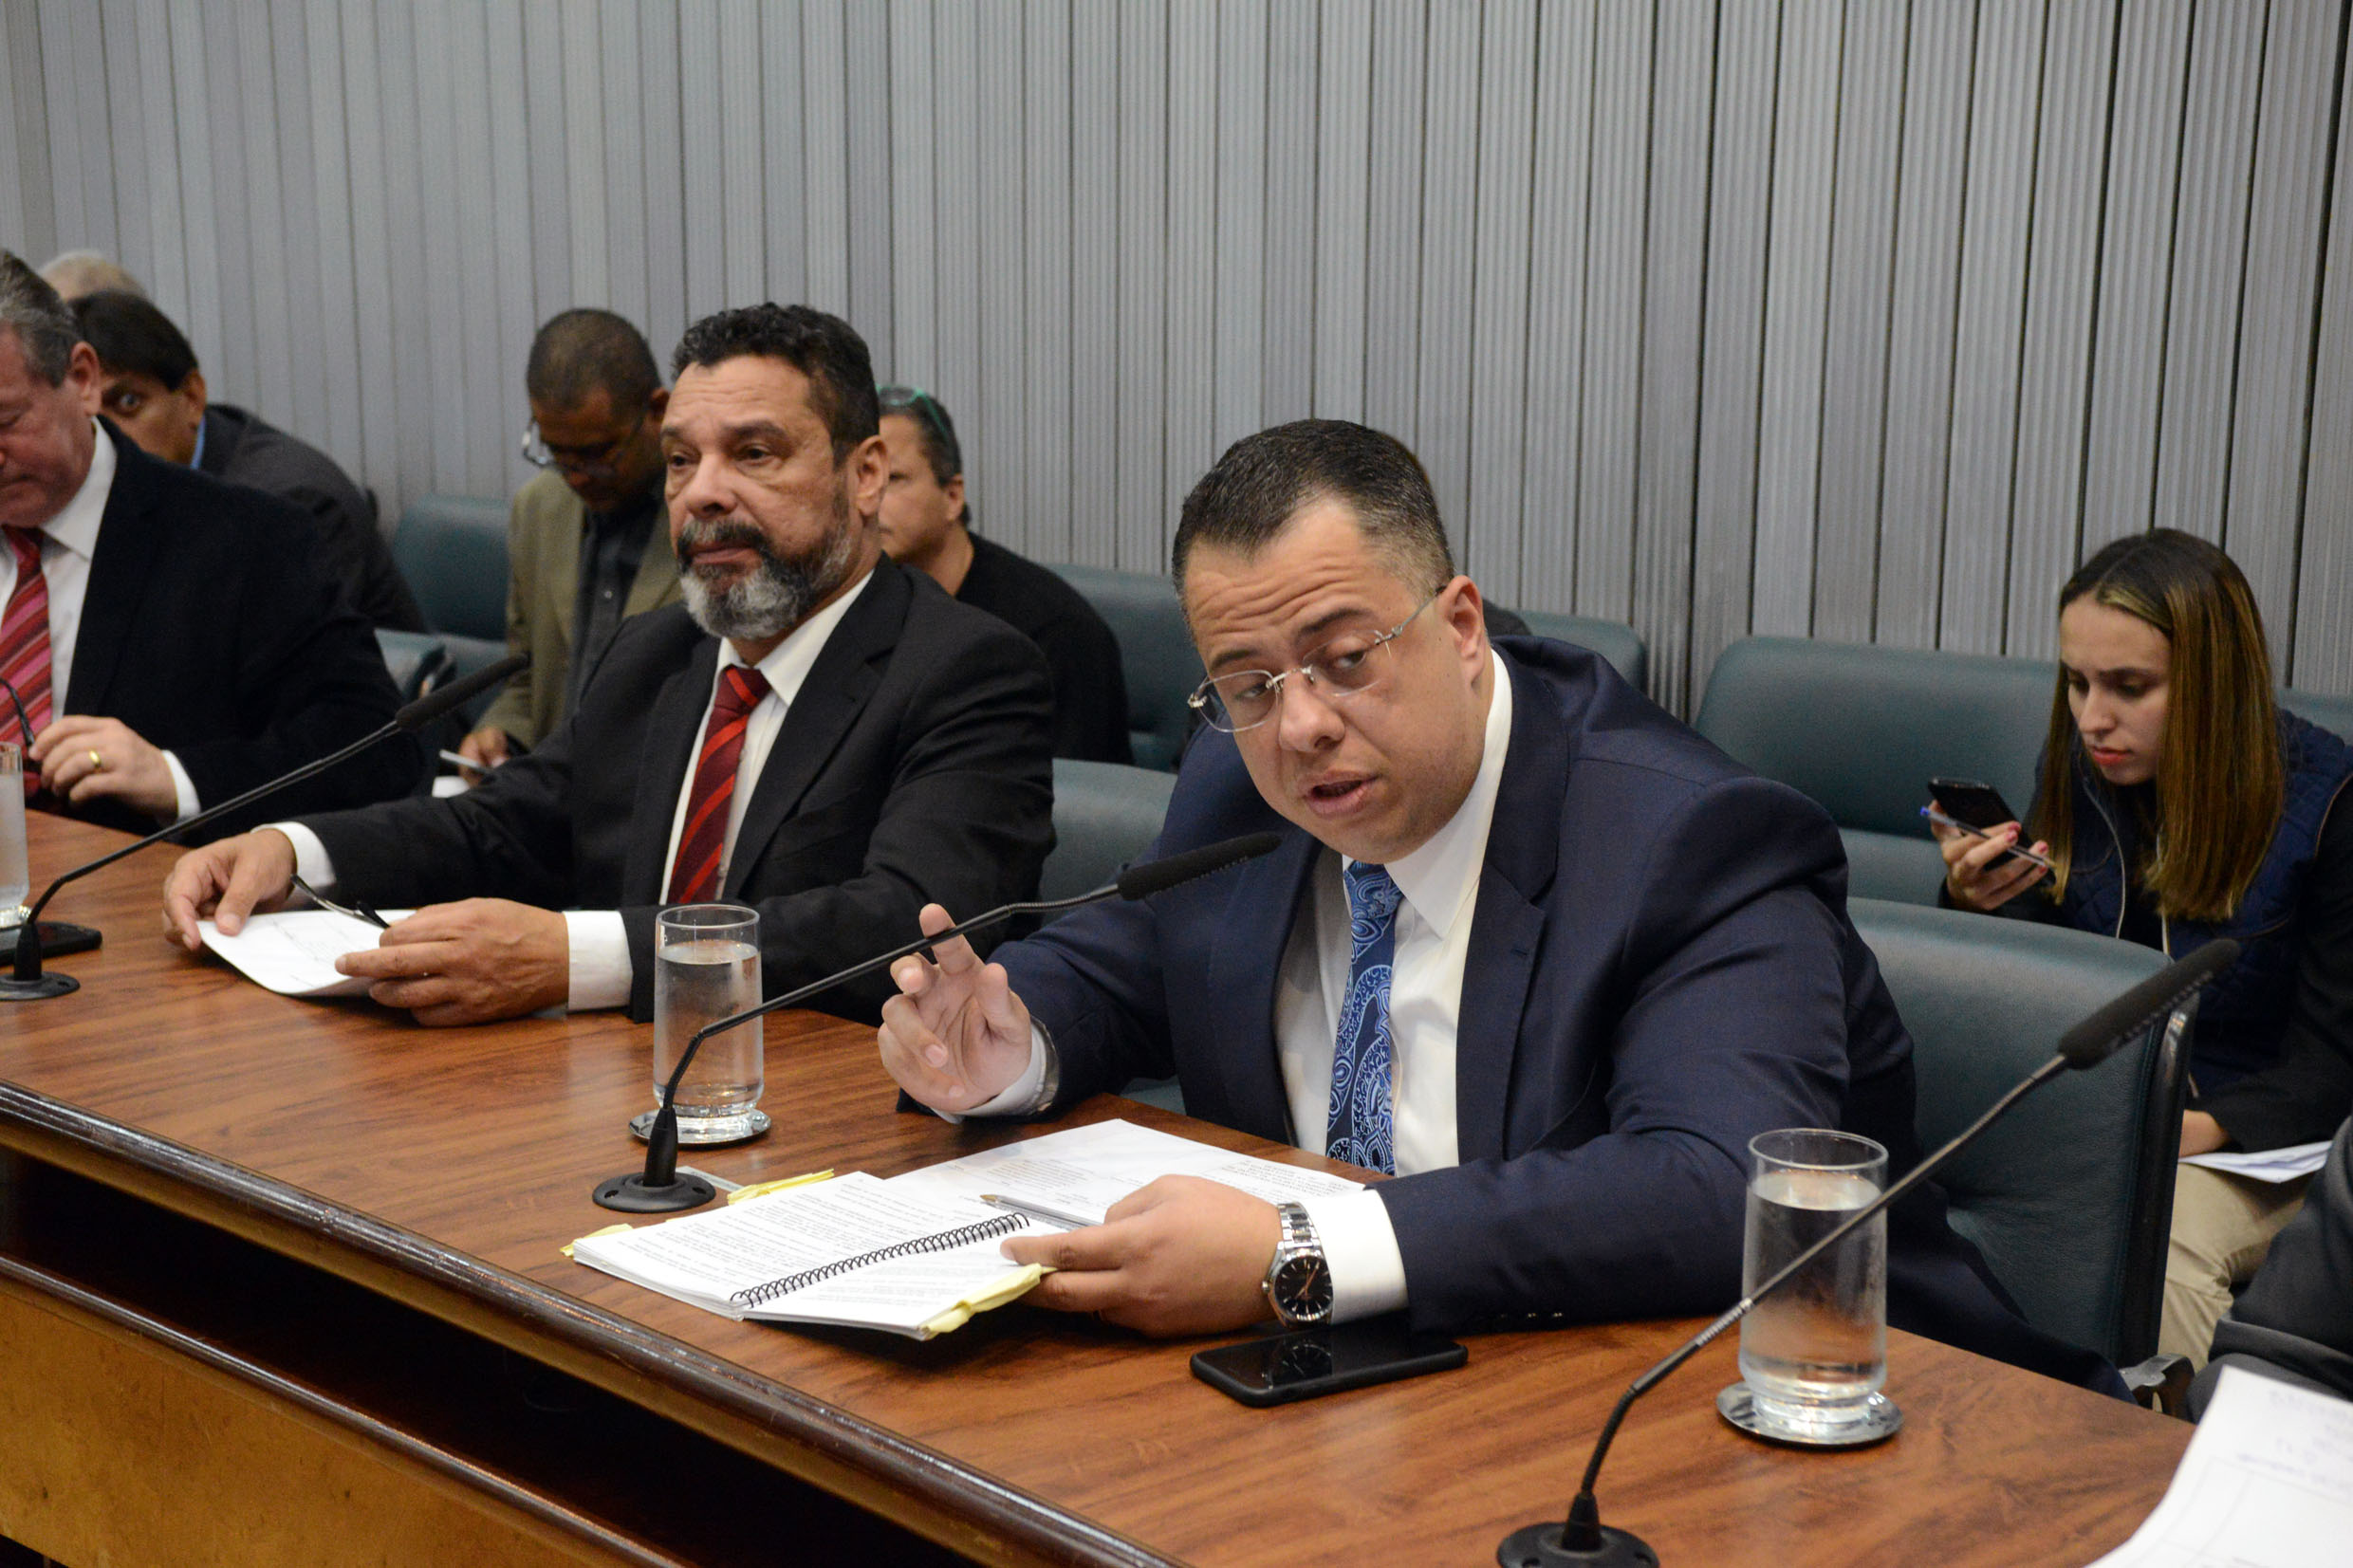 Teonilio Barba e Wellington Moura<a style='float:right' href='https://www3.al.sp.gov.br/repositorio/noticia/N-10-2017/fg211226.jpg' target=_blank><img src='/_img/material-file-download-white.png' width='14px' alt='Clique para baixar a imagem'></a>